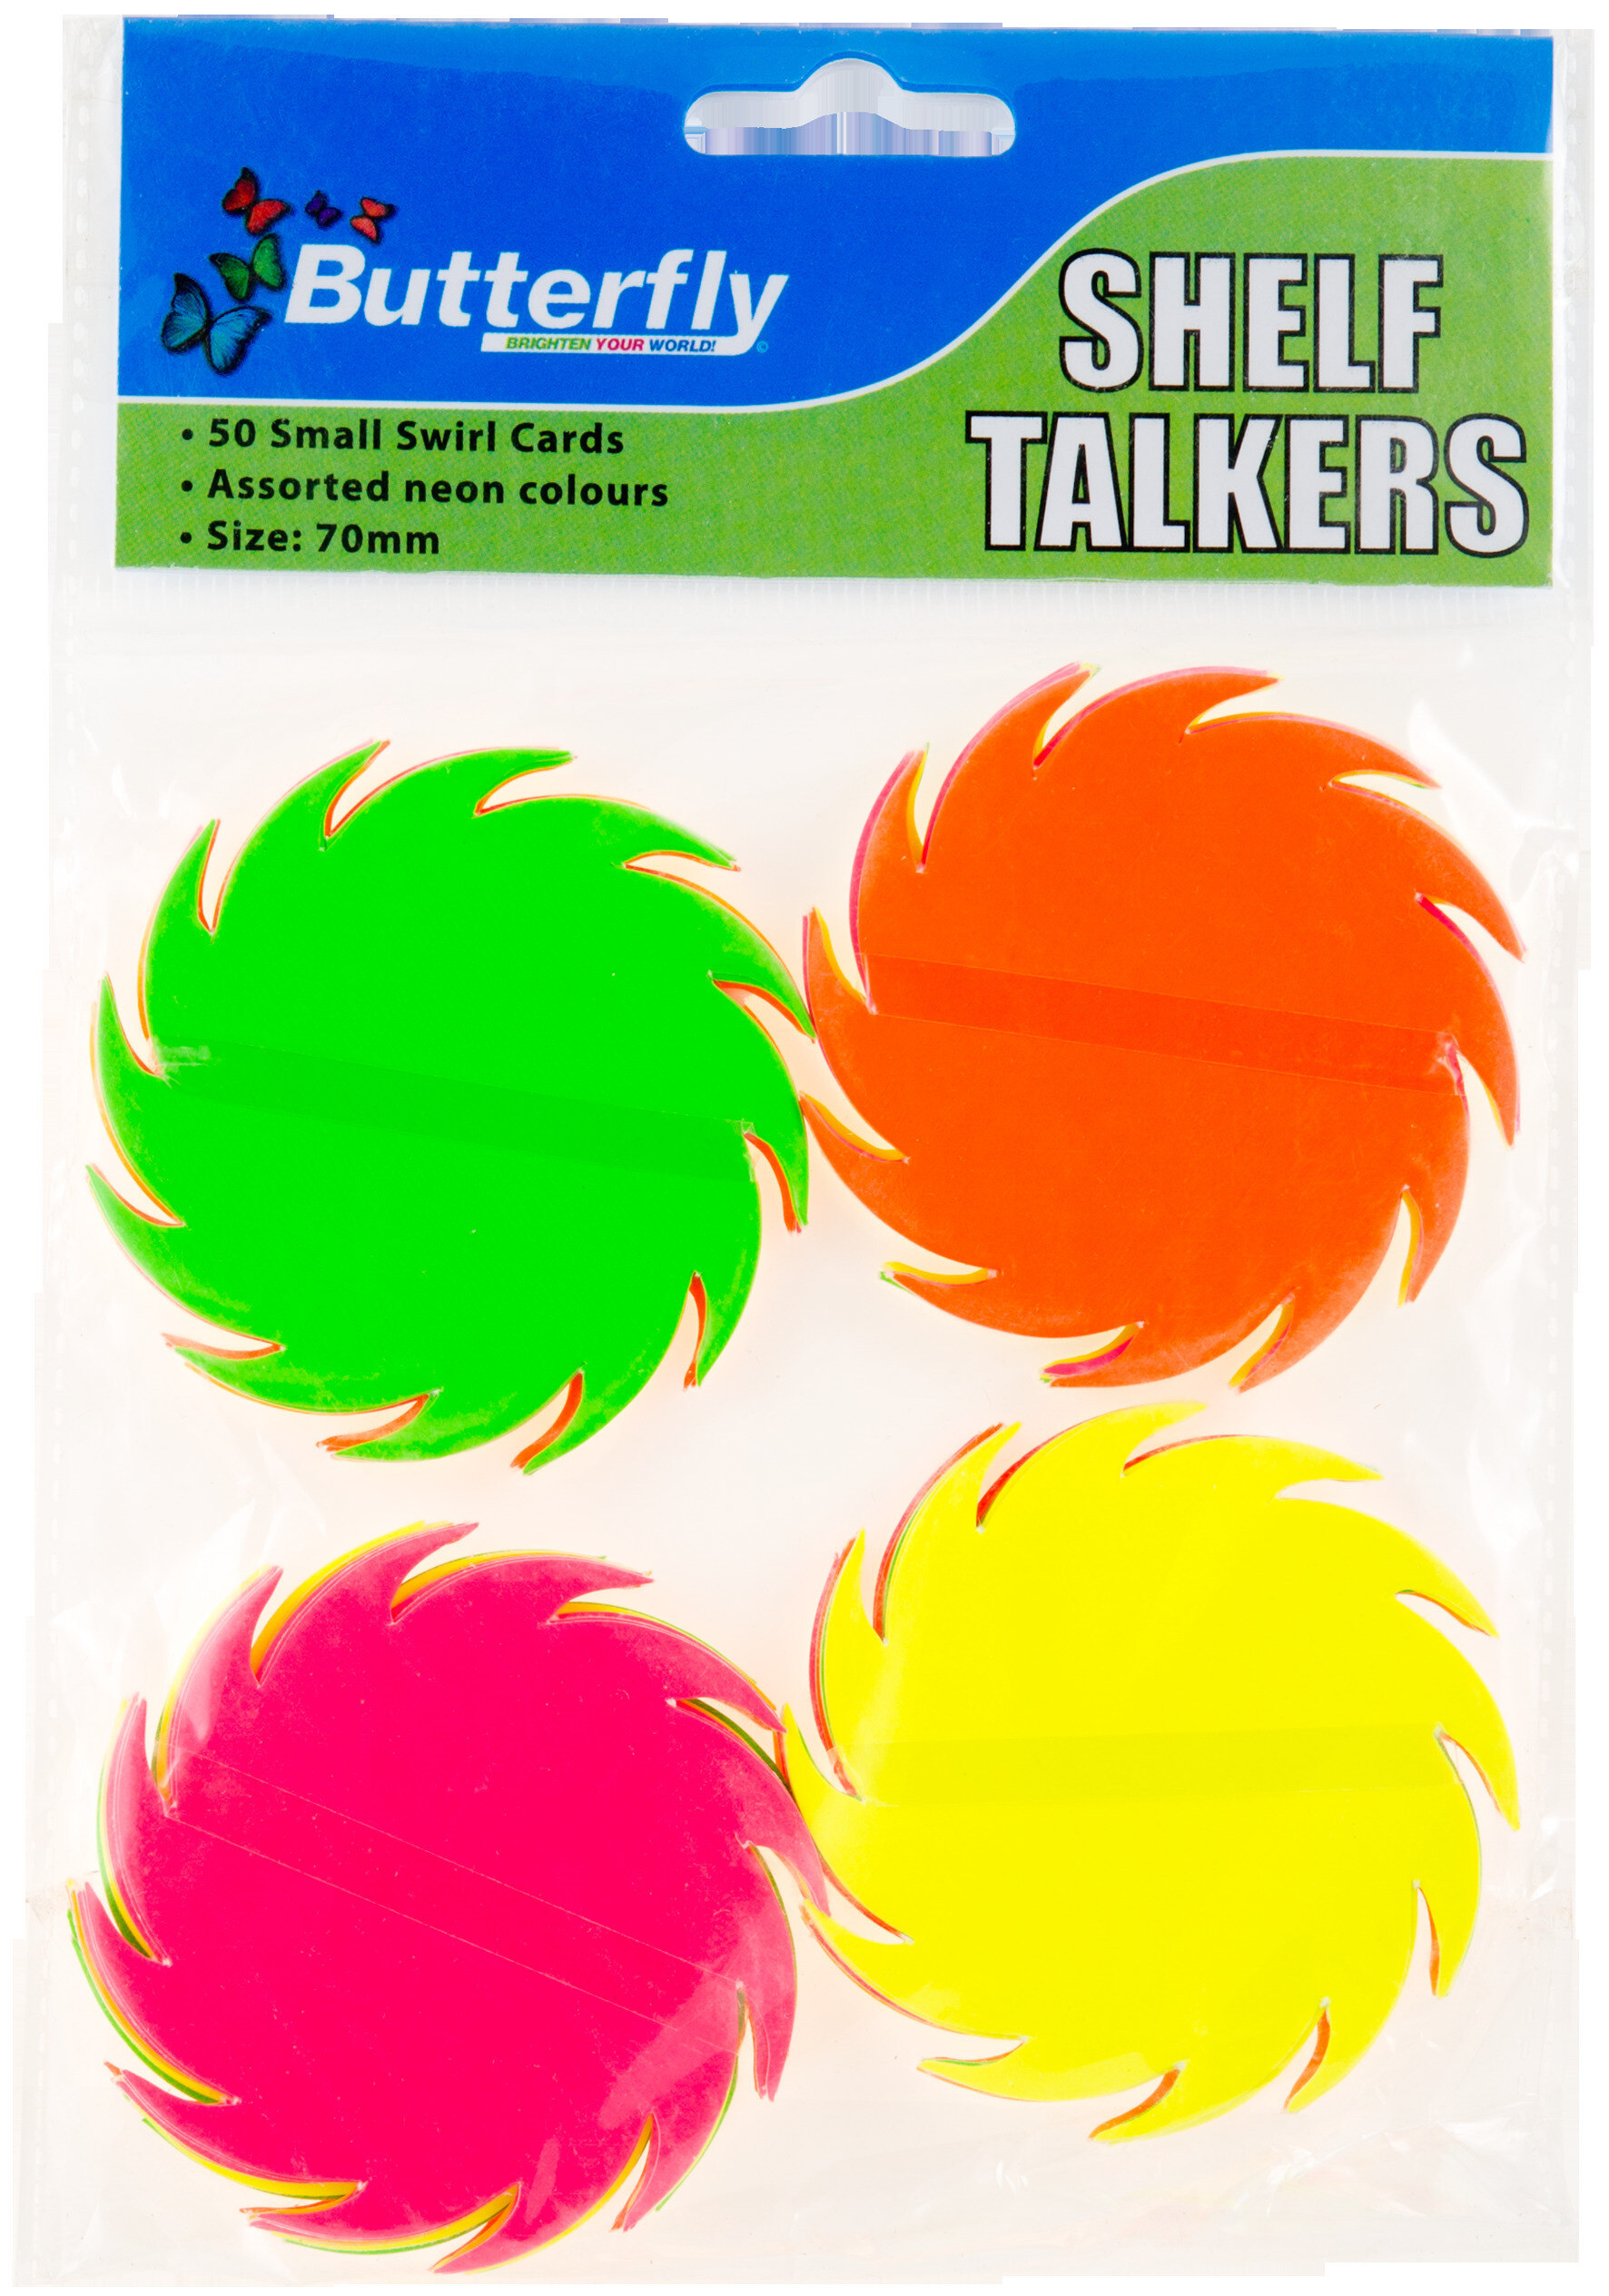 Shelf Talkers - Small Swirls 50 (70mm)